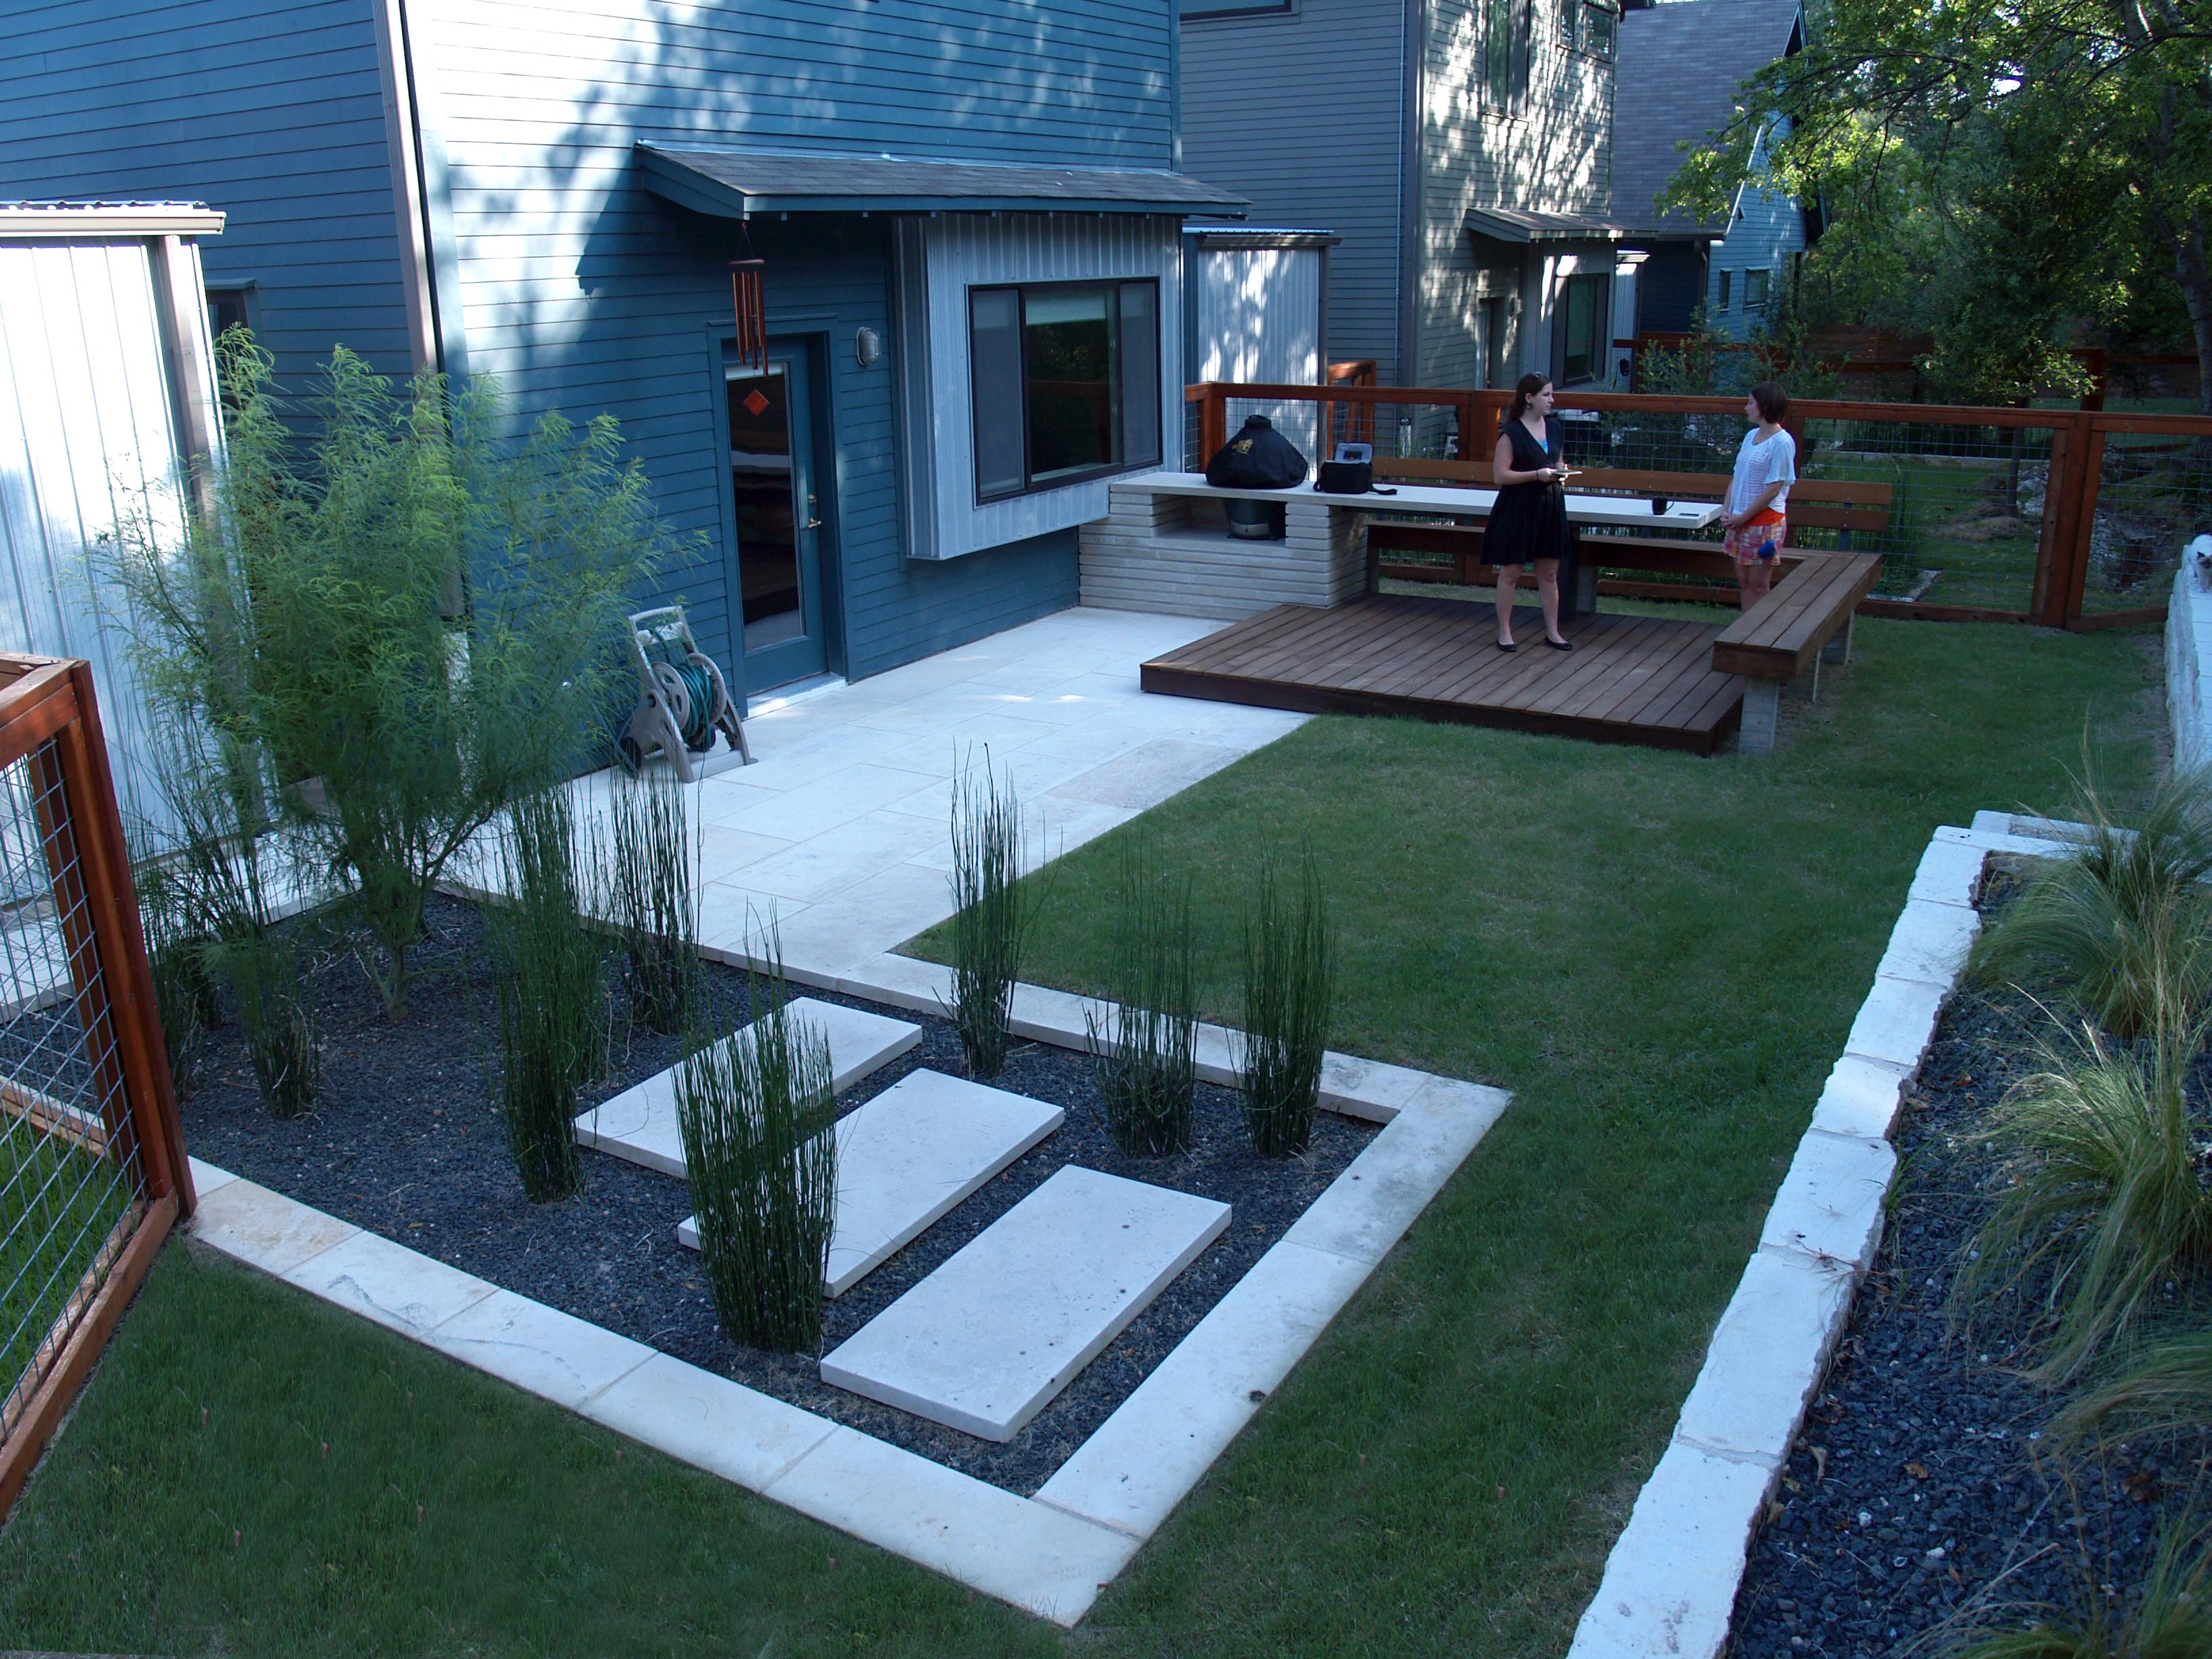 Garden Design With Modern Small Backyard Kitchen Dining And Living Persimmon Plant From